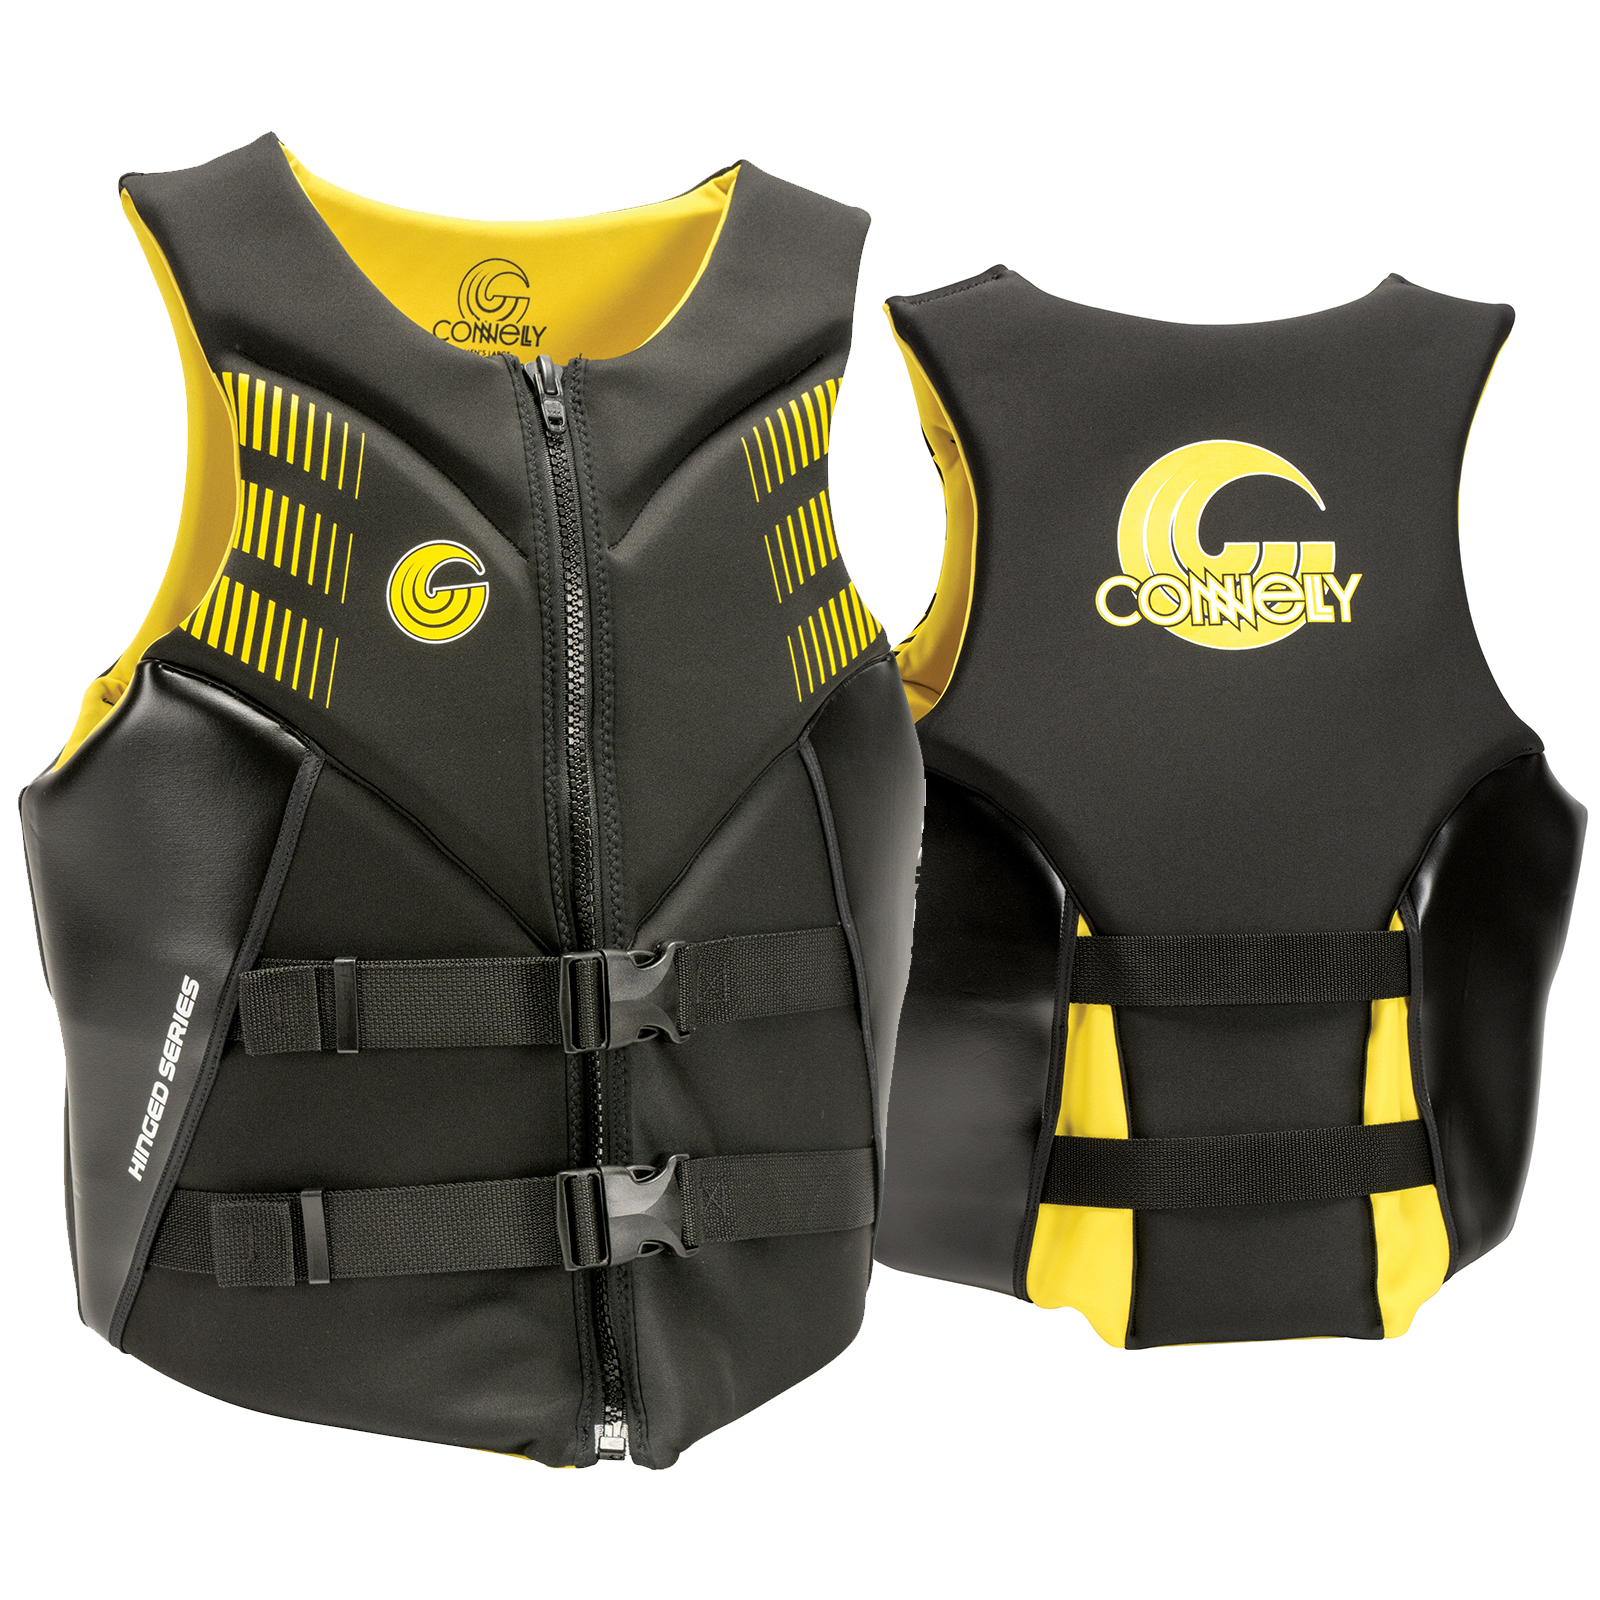 ASPECT NEO LIFE VEST CONNELLY 2018